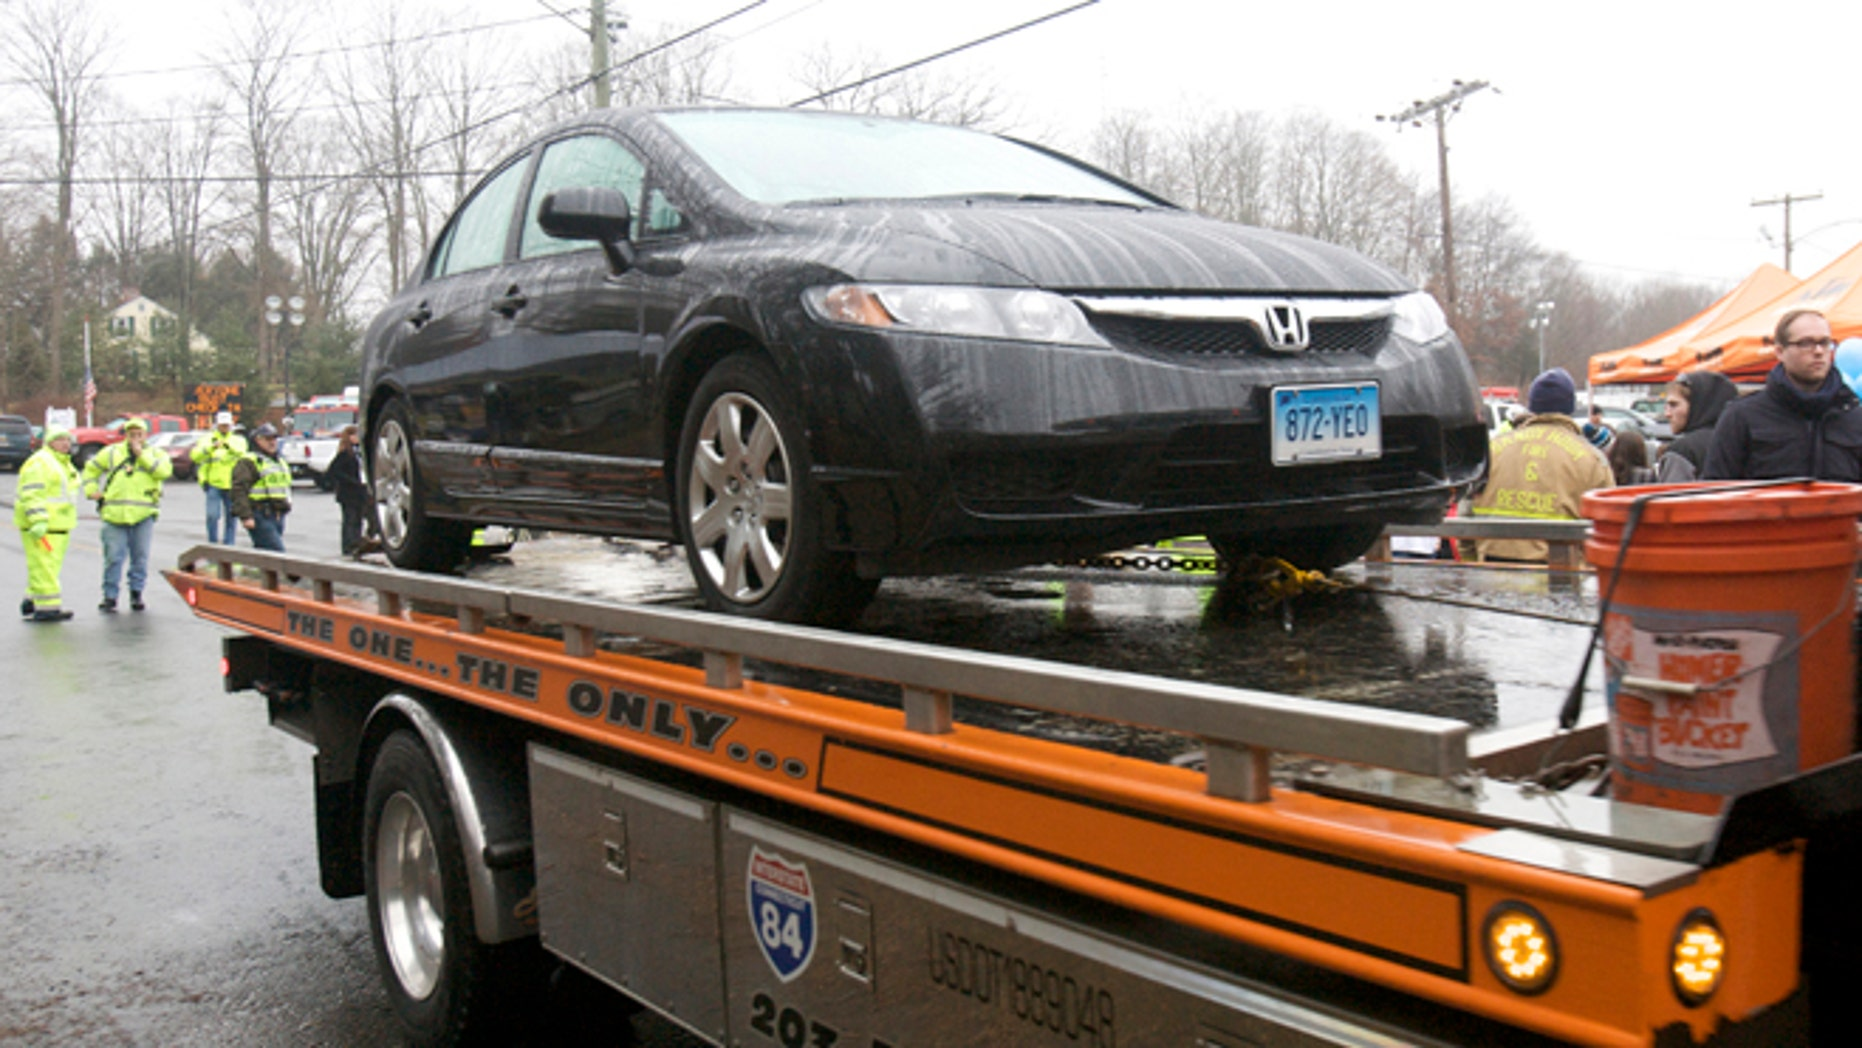 Dec. 16, 2012: The car driven by Connecticut school shooter Adam Lanza is towed from Sandy Hook Elementary School in Newtown, Conn.